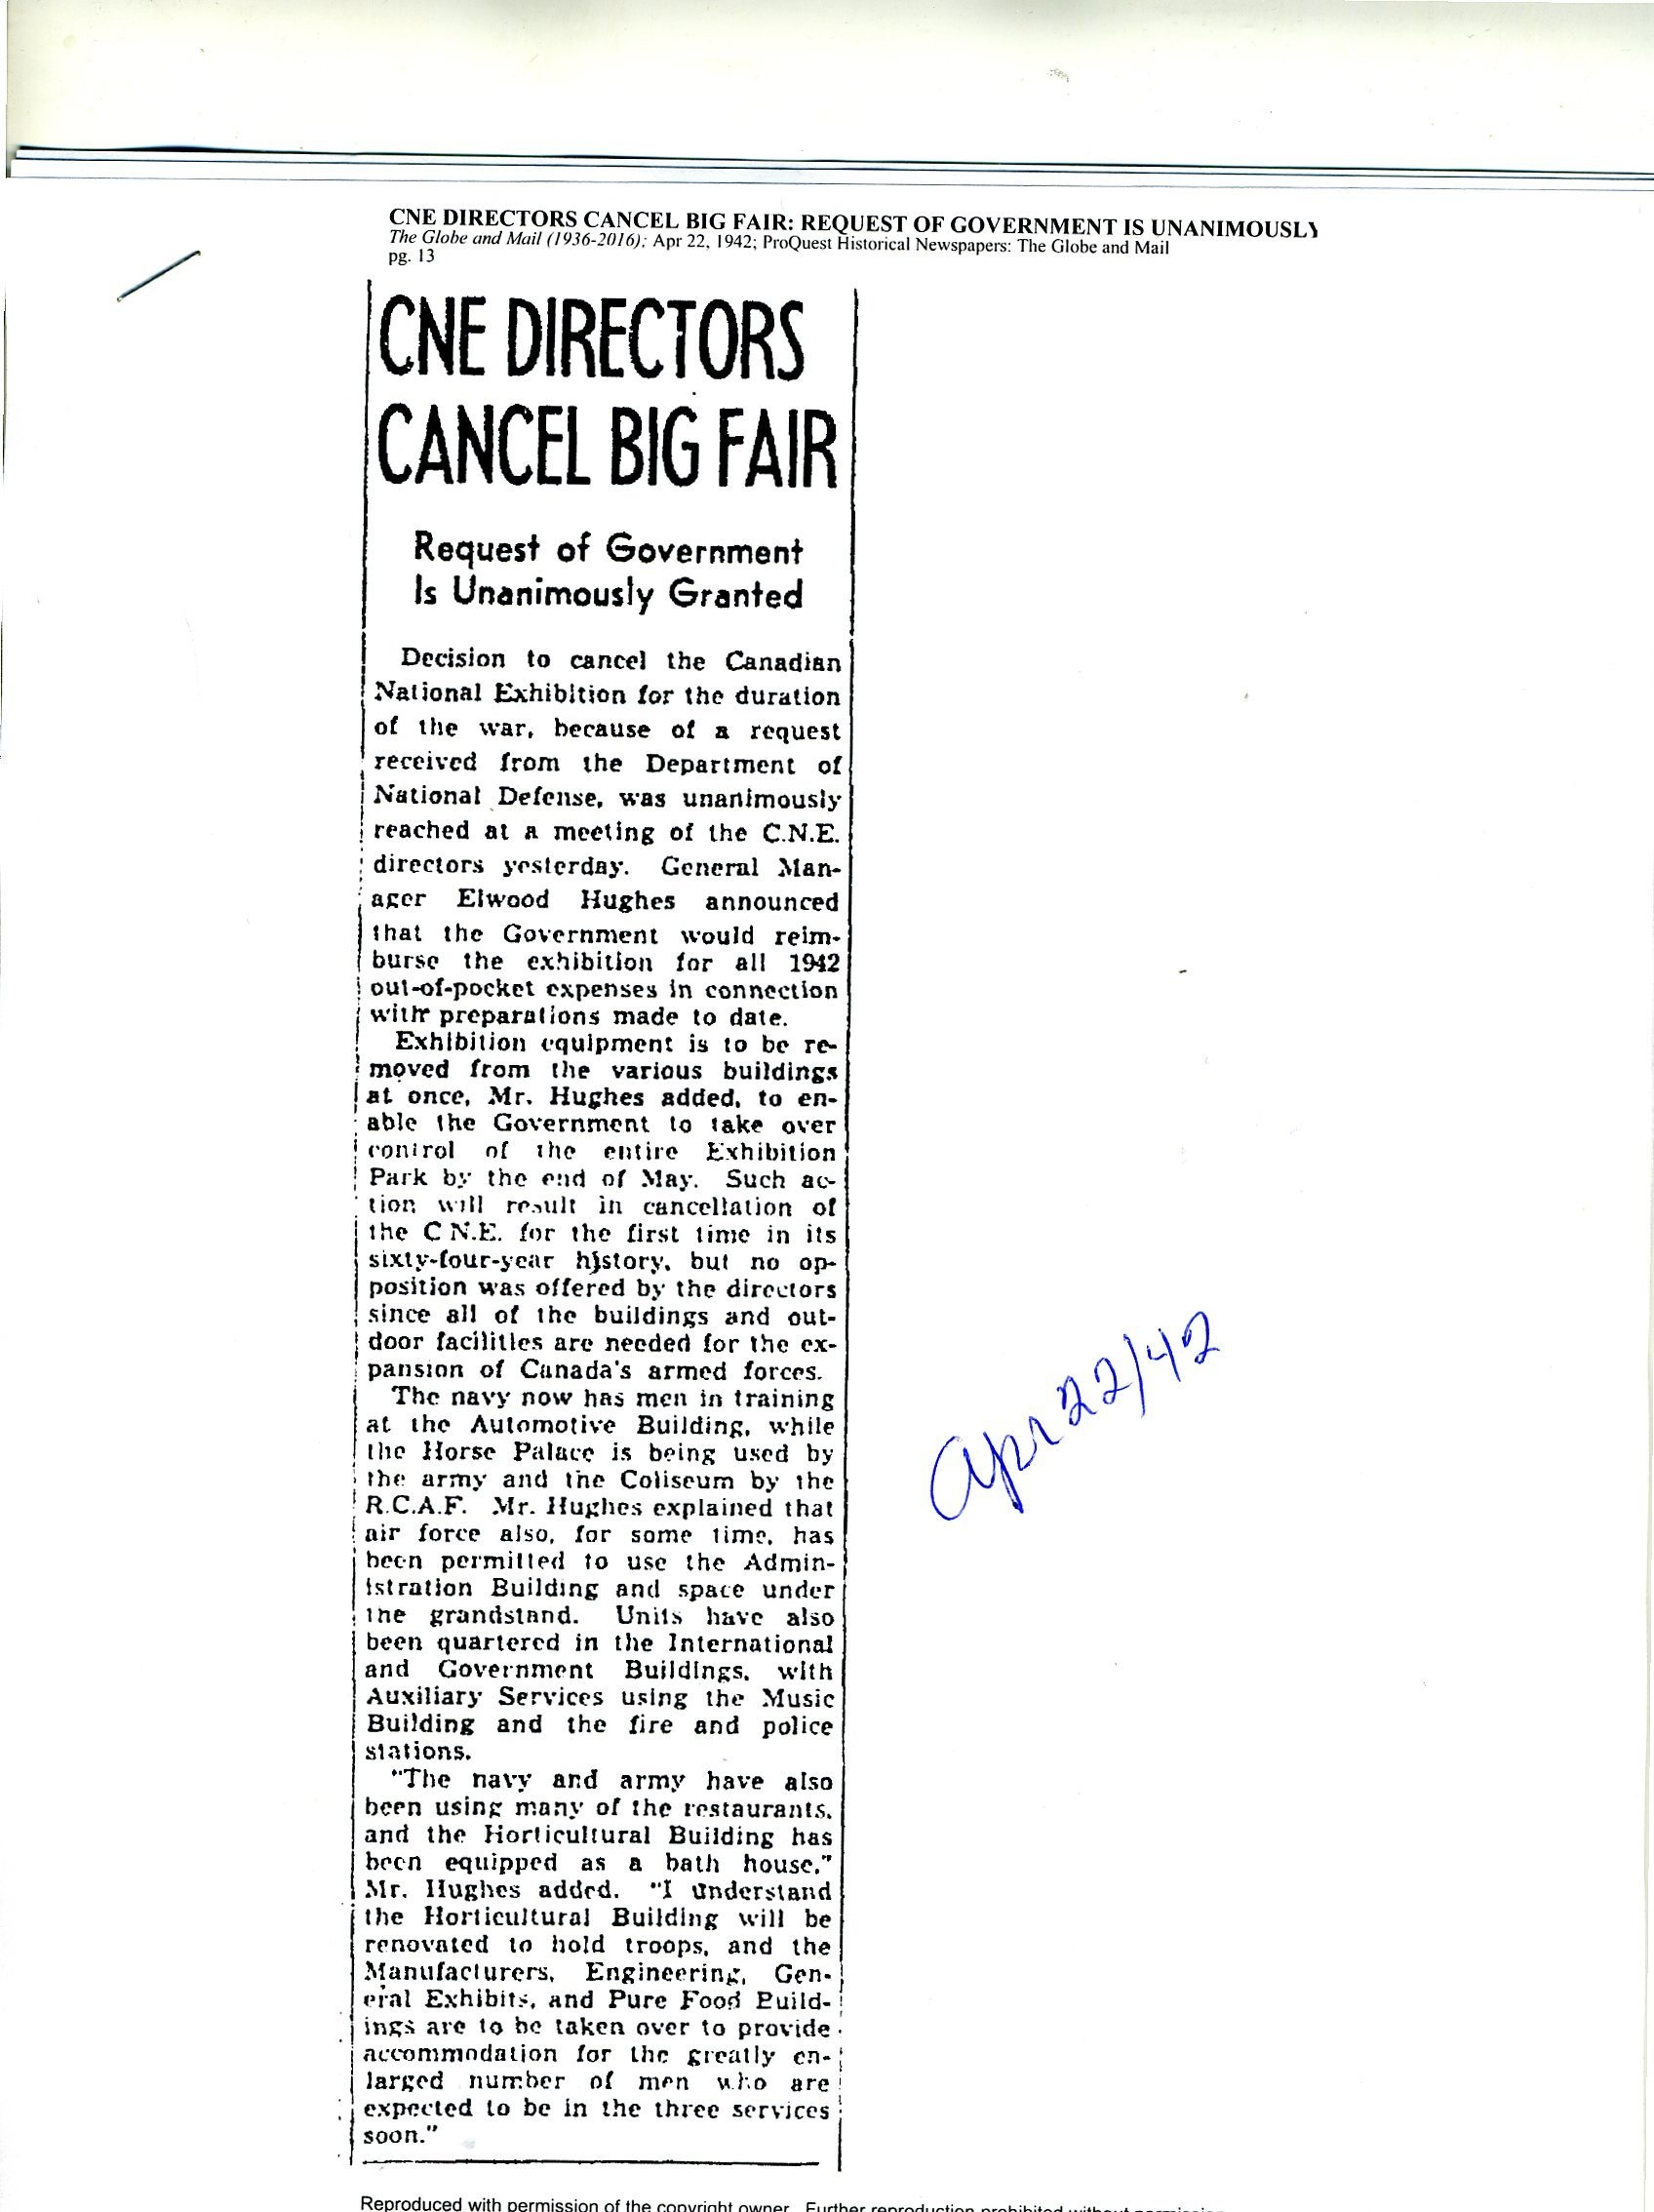 1942 Article About The Cancellation Of The CNE During The War